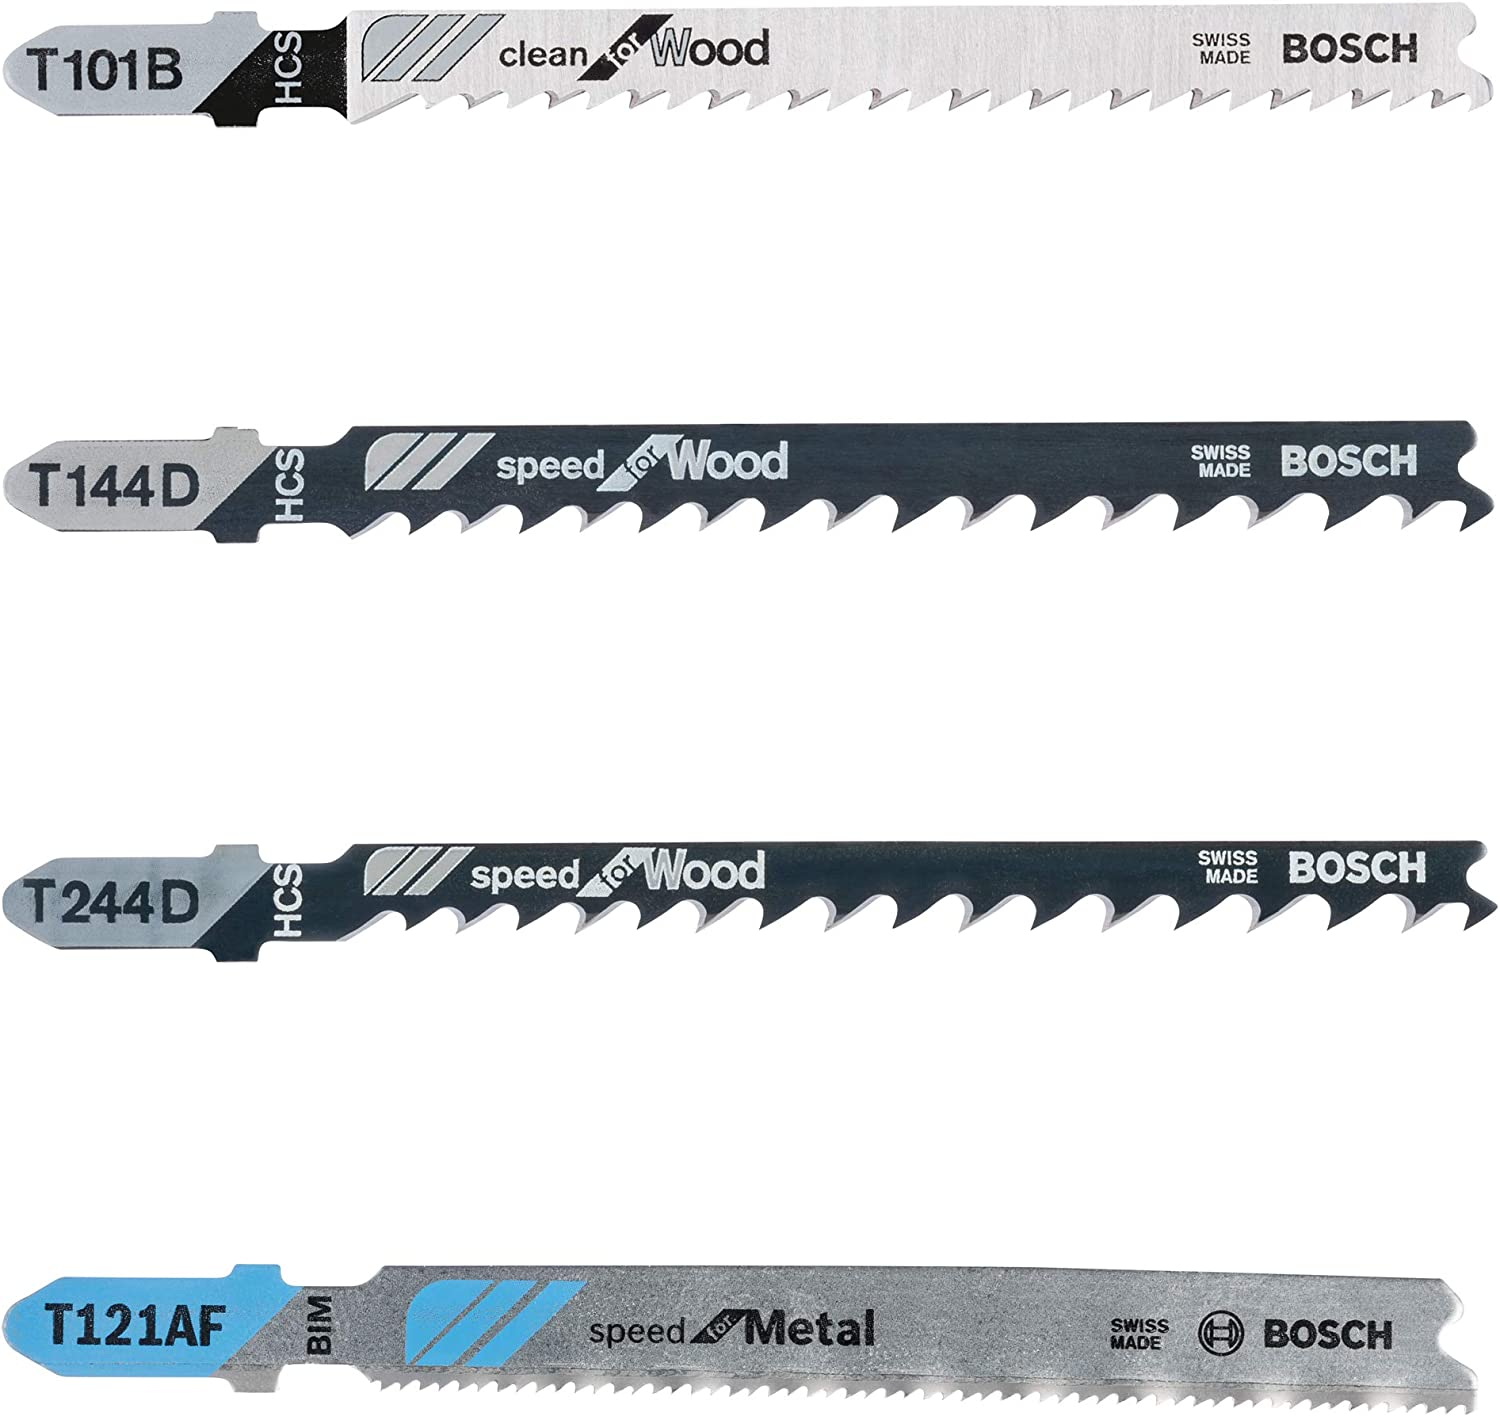 BOSCH 10 PIECE ASSORTMENT JIG SAW BLADES TO FIT BLACK AND DECKER AND SIMILAR